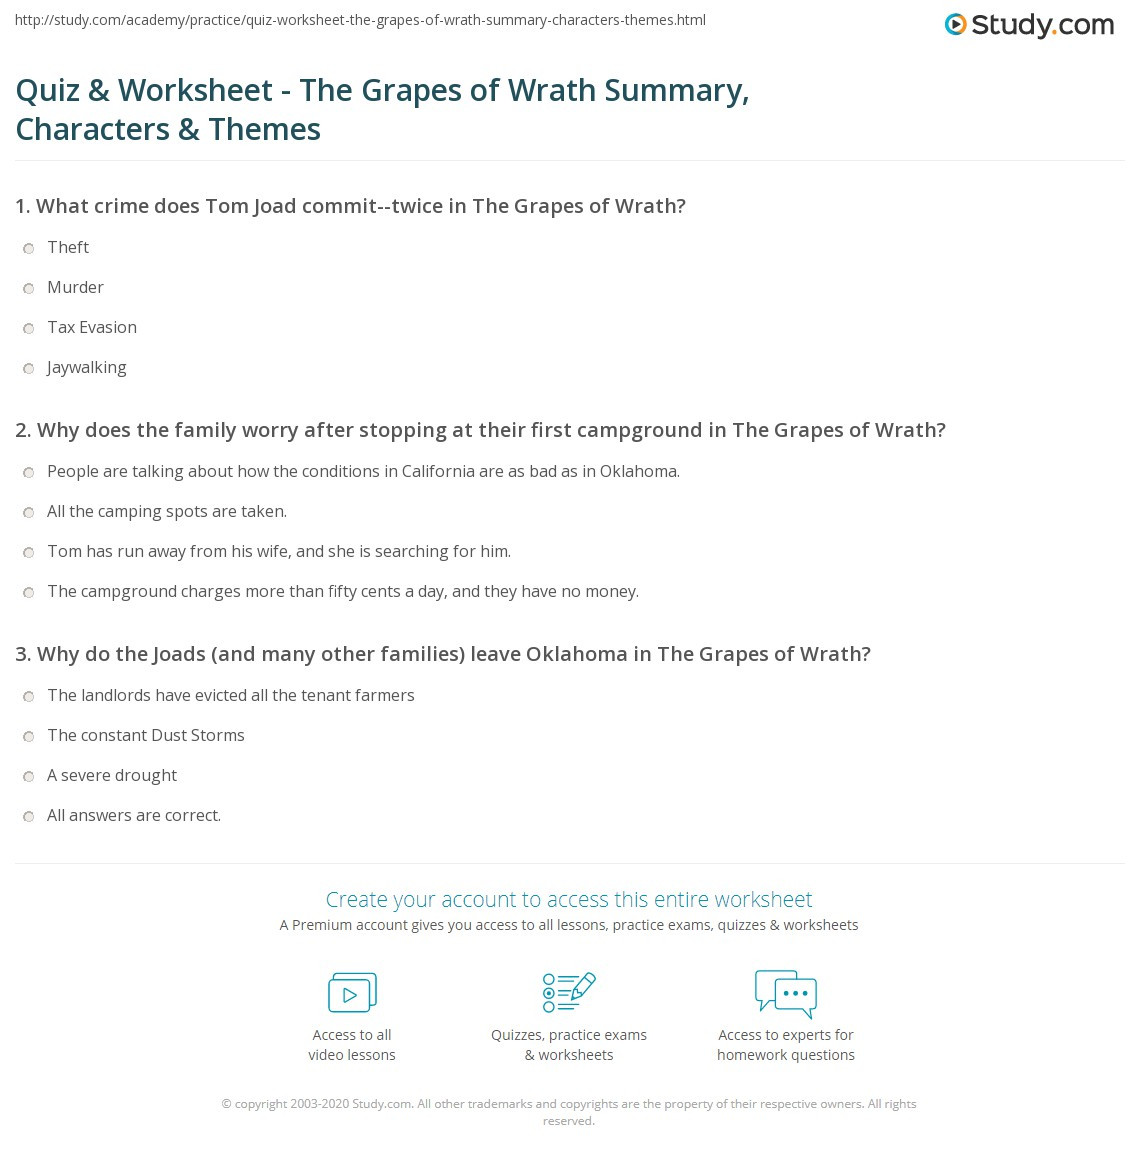 Theme Worksheets 5th Grade Quiz Worksheet the Grapes Wrath Summary Characters